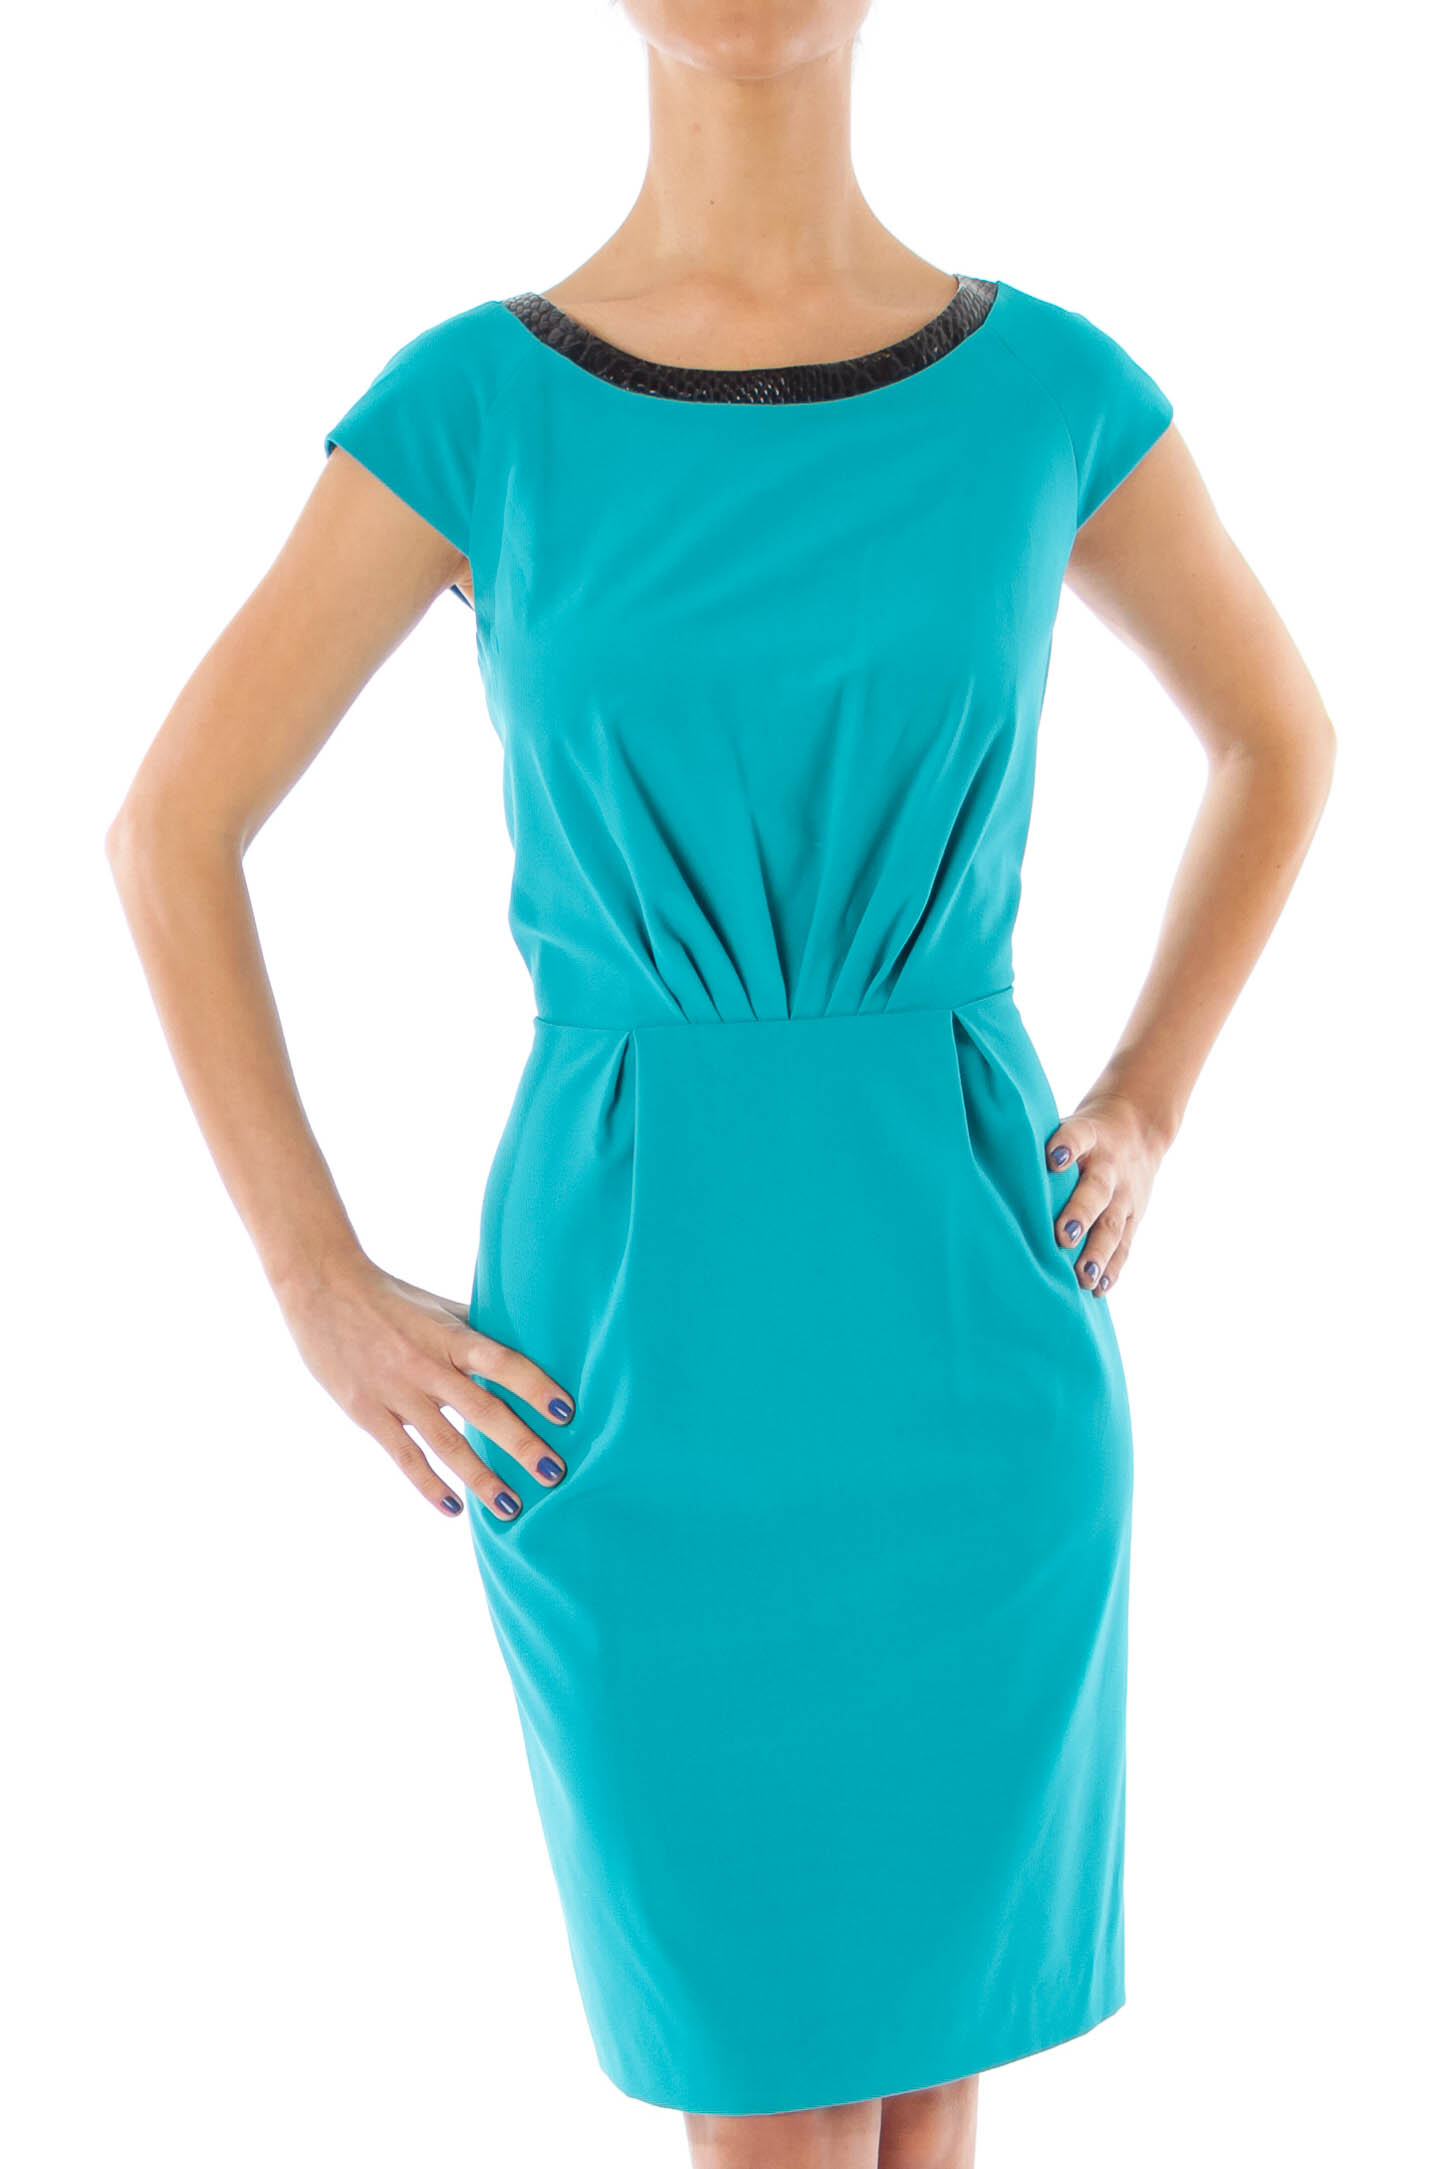 26a08699a0e1fa Shop Turquoise Leather Trim Sheath Dress clothing and handbags at ...